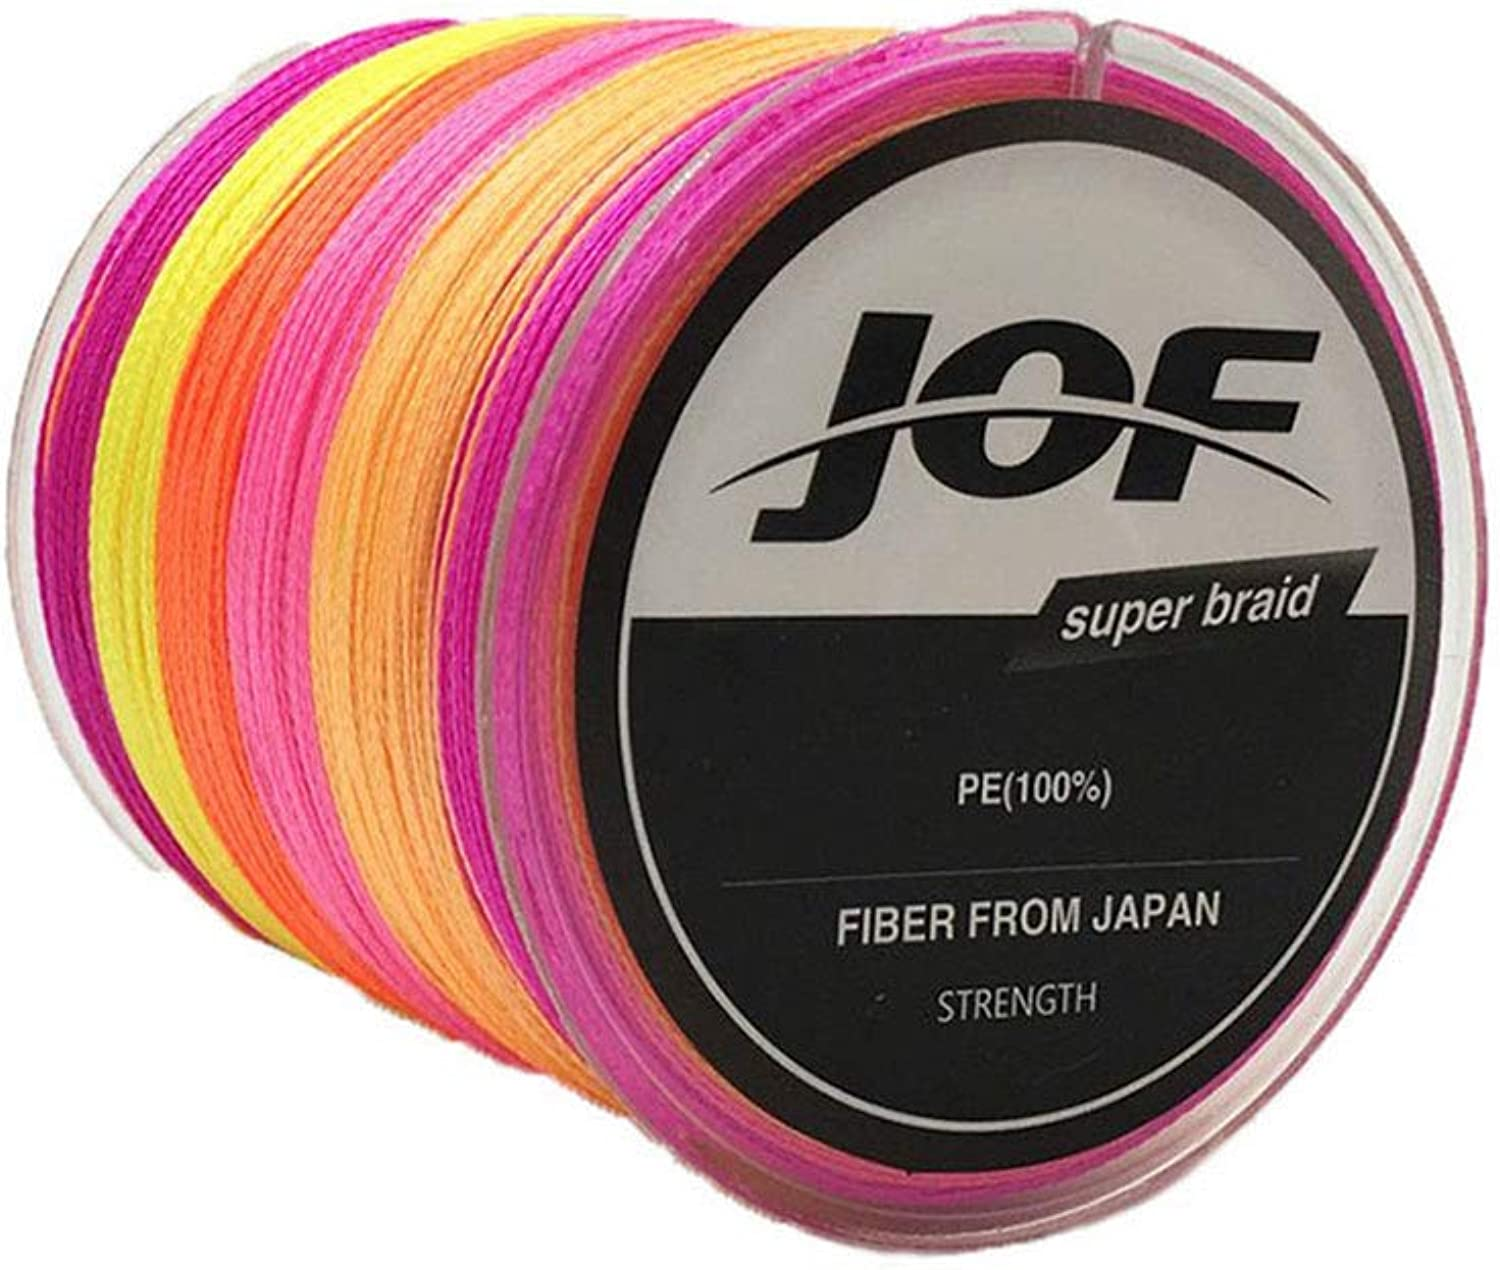 Fishing Line 4Strand Multicolor PE Abrasion Resistant(546Yards500m) 100 115 130 150 lb Extra Thin Diameter 0.5 0.55 0.6 0.8mm Suitable for Saltwater &Freshwater